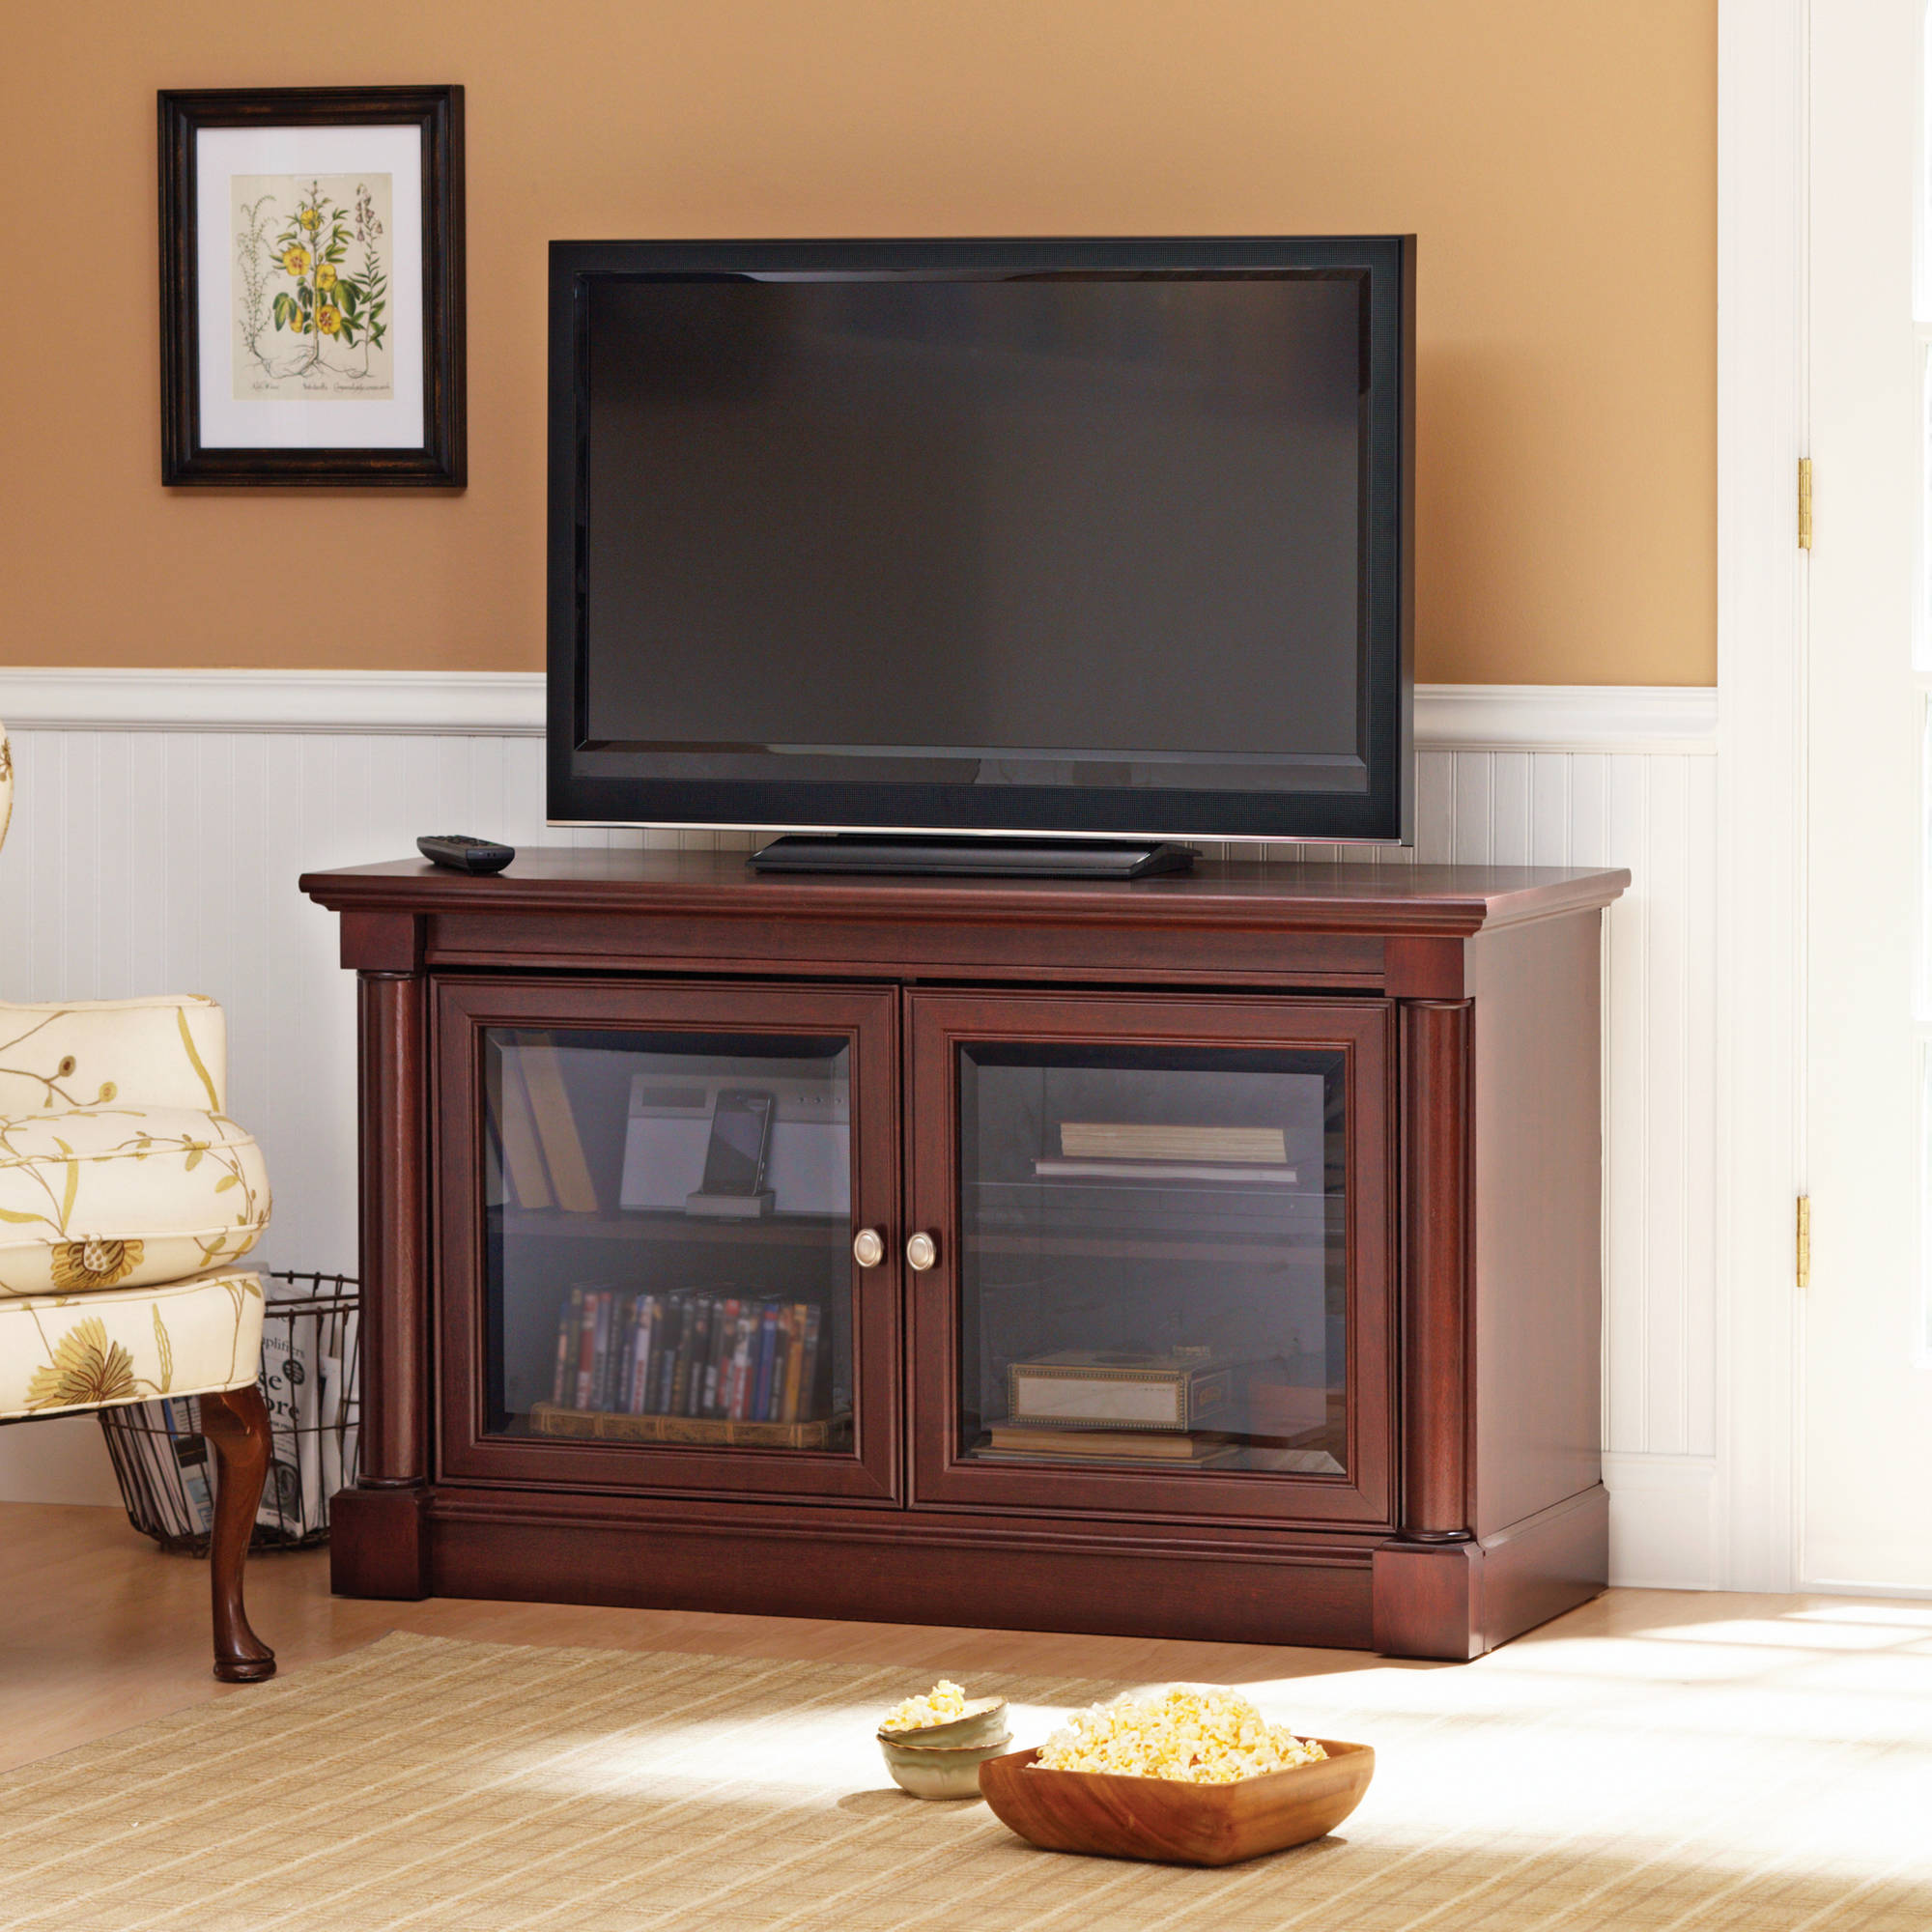 Better Homes And Gardens Ashwood Road Cherry Tv Stand For Tvs Up To